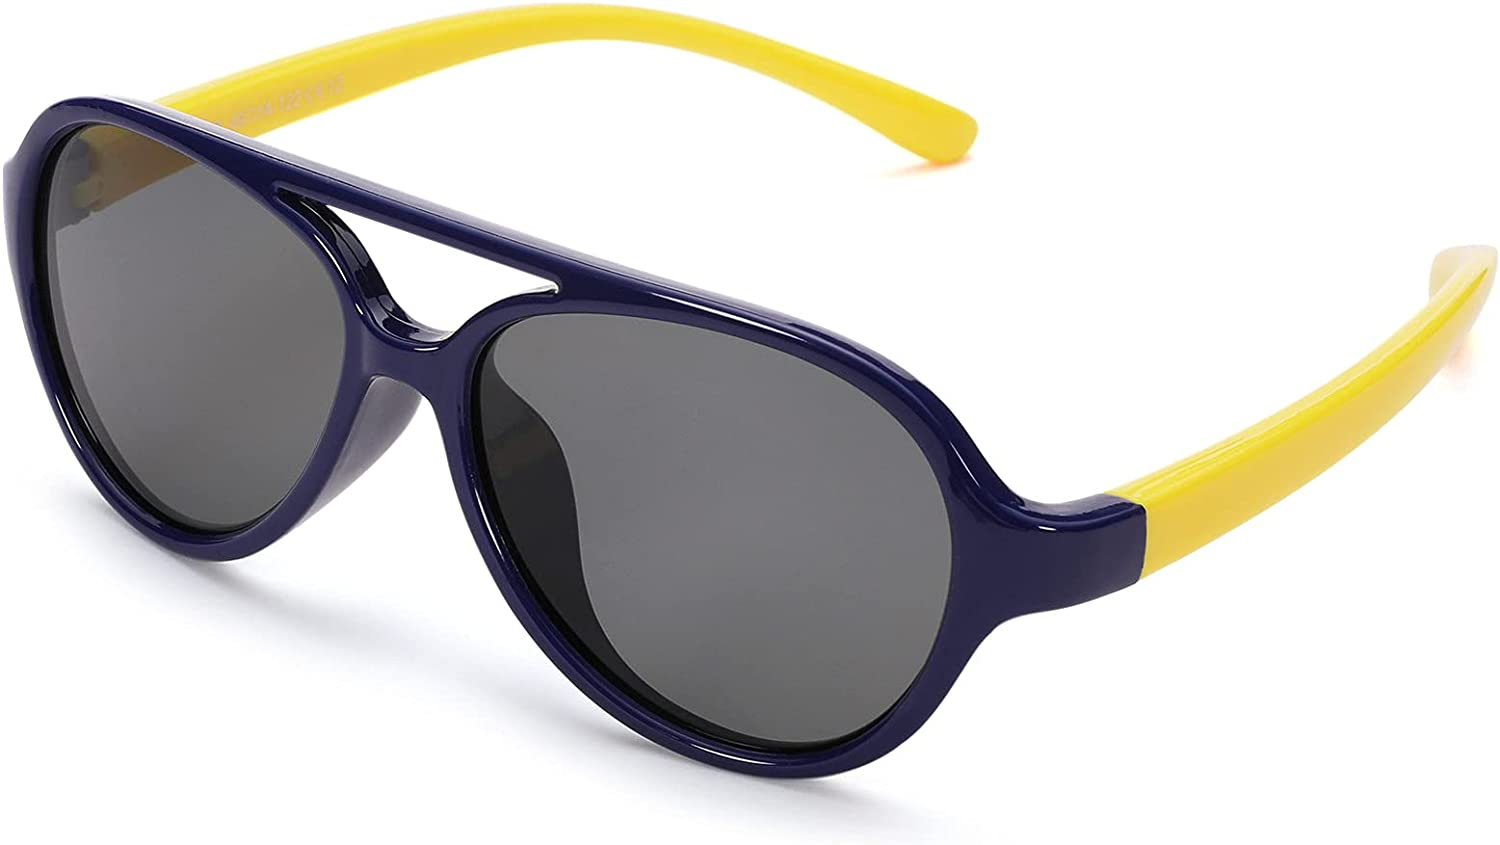 Pro Acme Polarized TPEE Durable Sunglasses Boys Bombing free shipping Discount is also underway for Aviator Kids